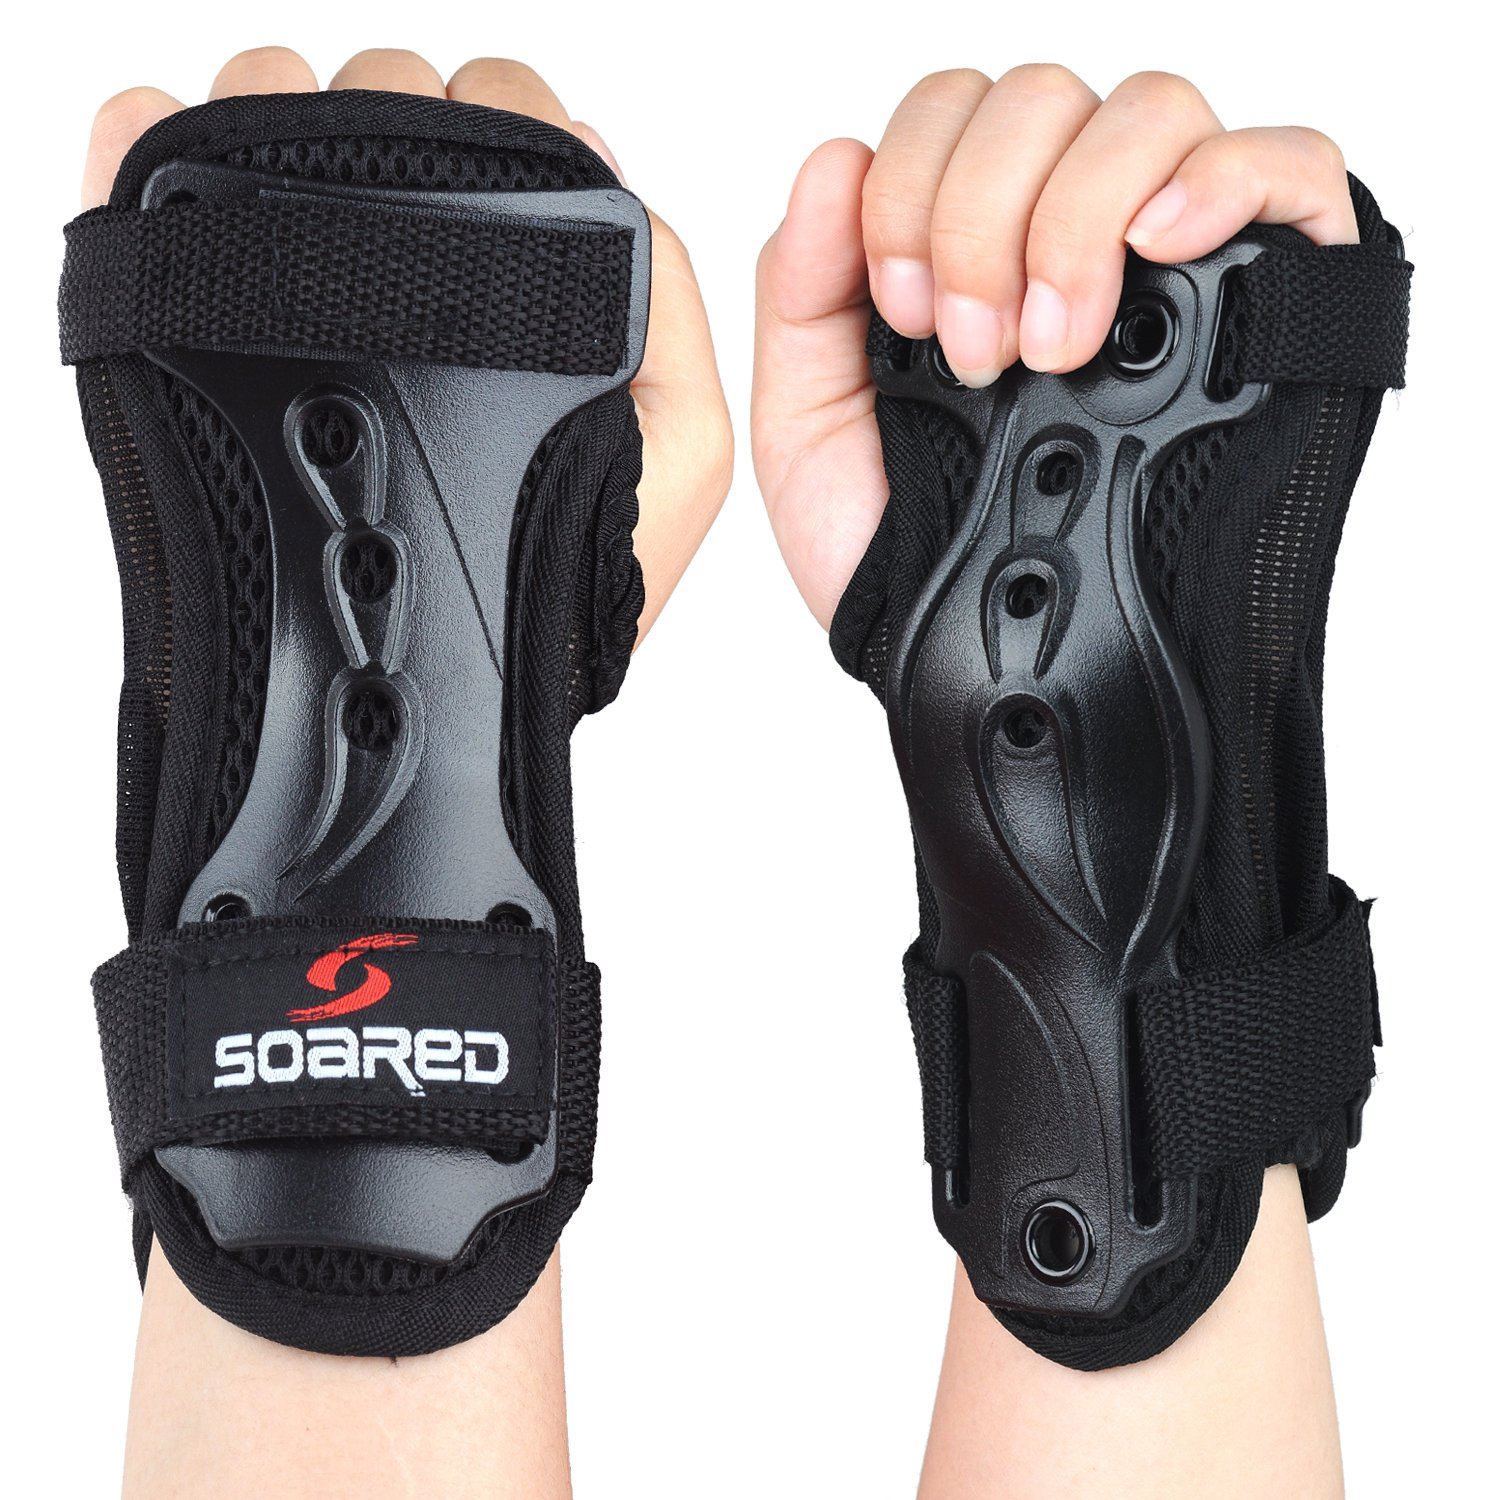 Soared Wrist Guards Protective Gear Hand Pads for Snowboard Skiing Skateboard Roller Skating Scooter Kids Women Men